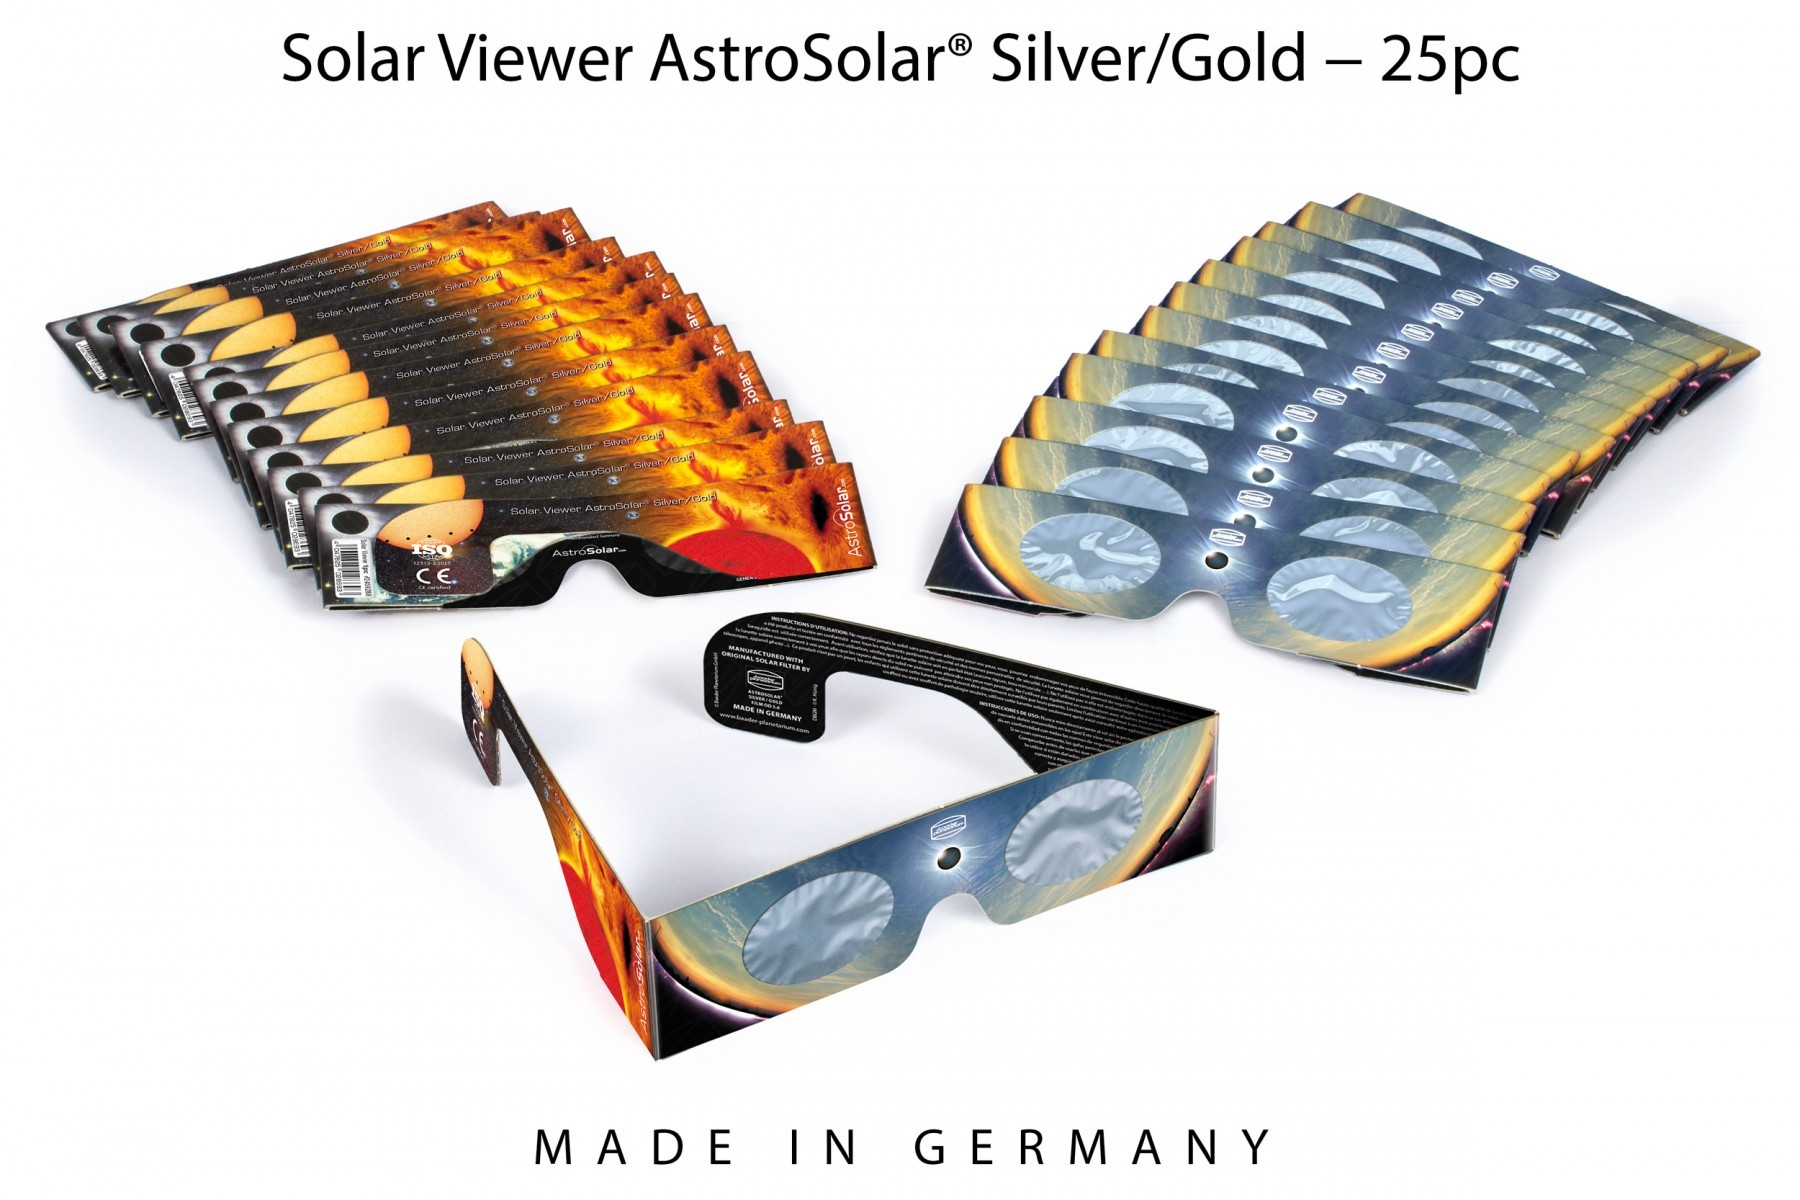 Kit 25 pezzi Occhialino Solar Viewer AstroSolar Silver/Gold